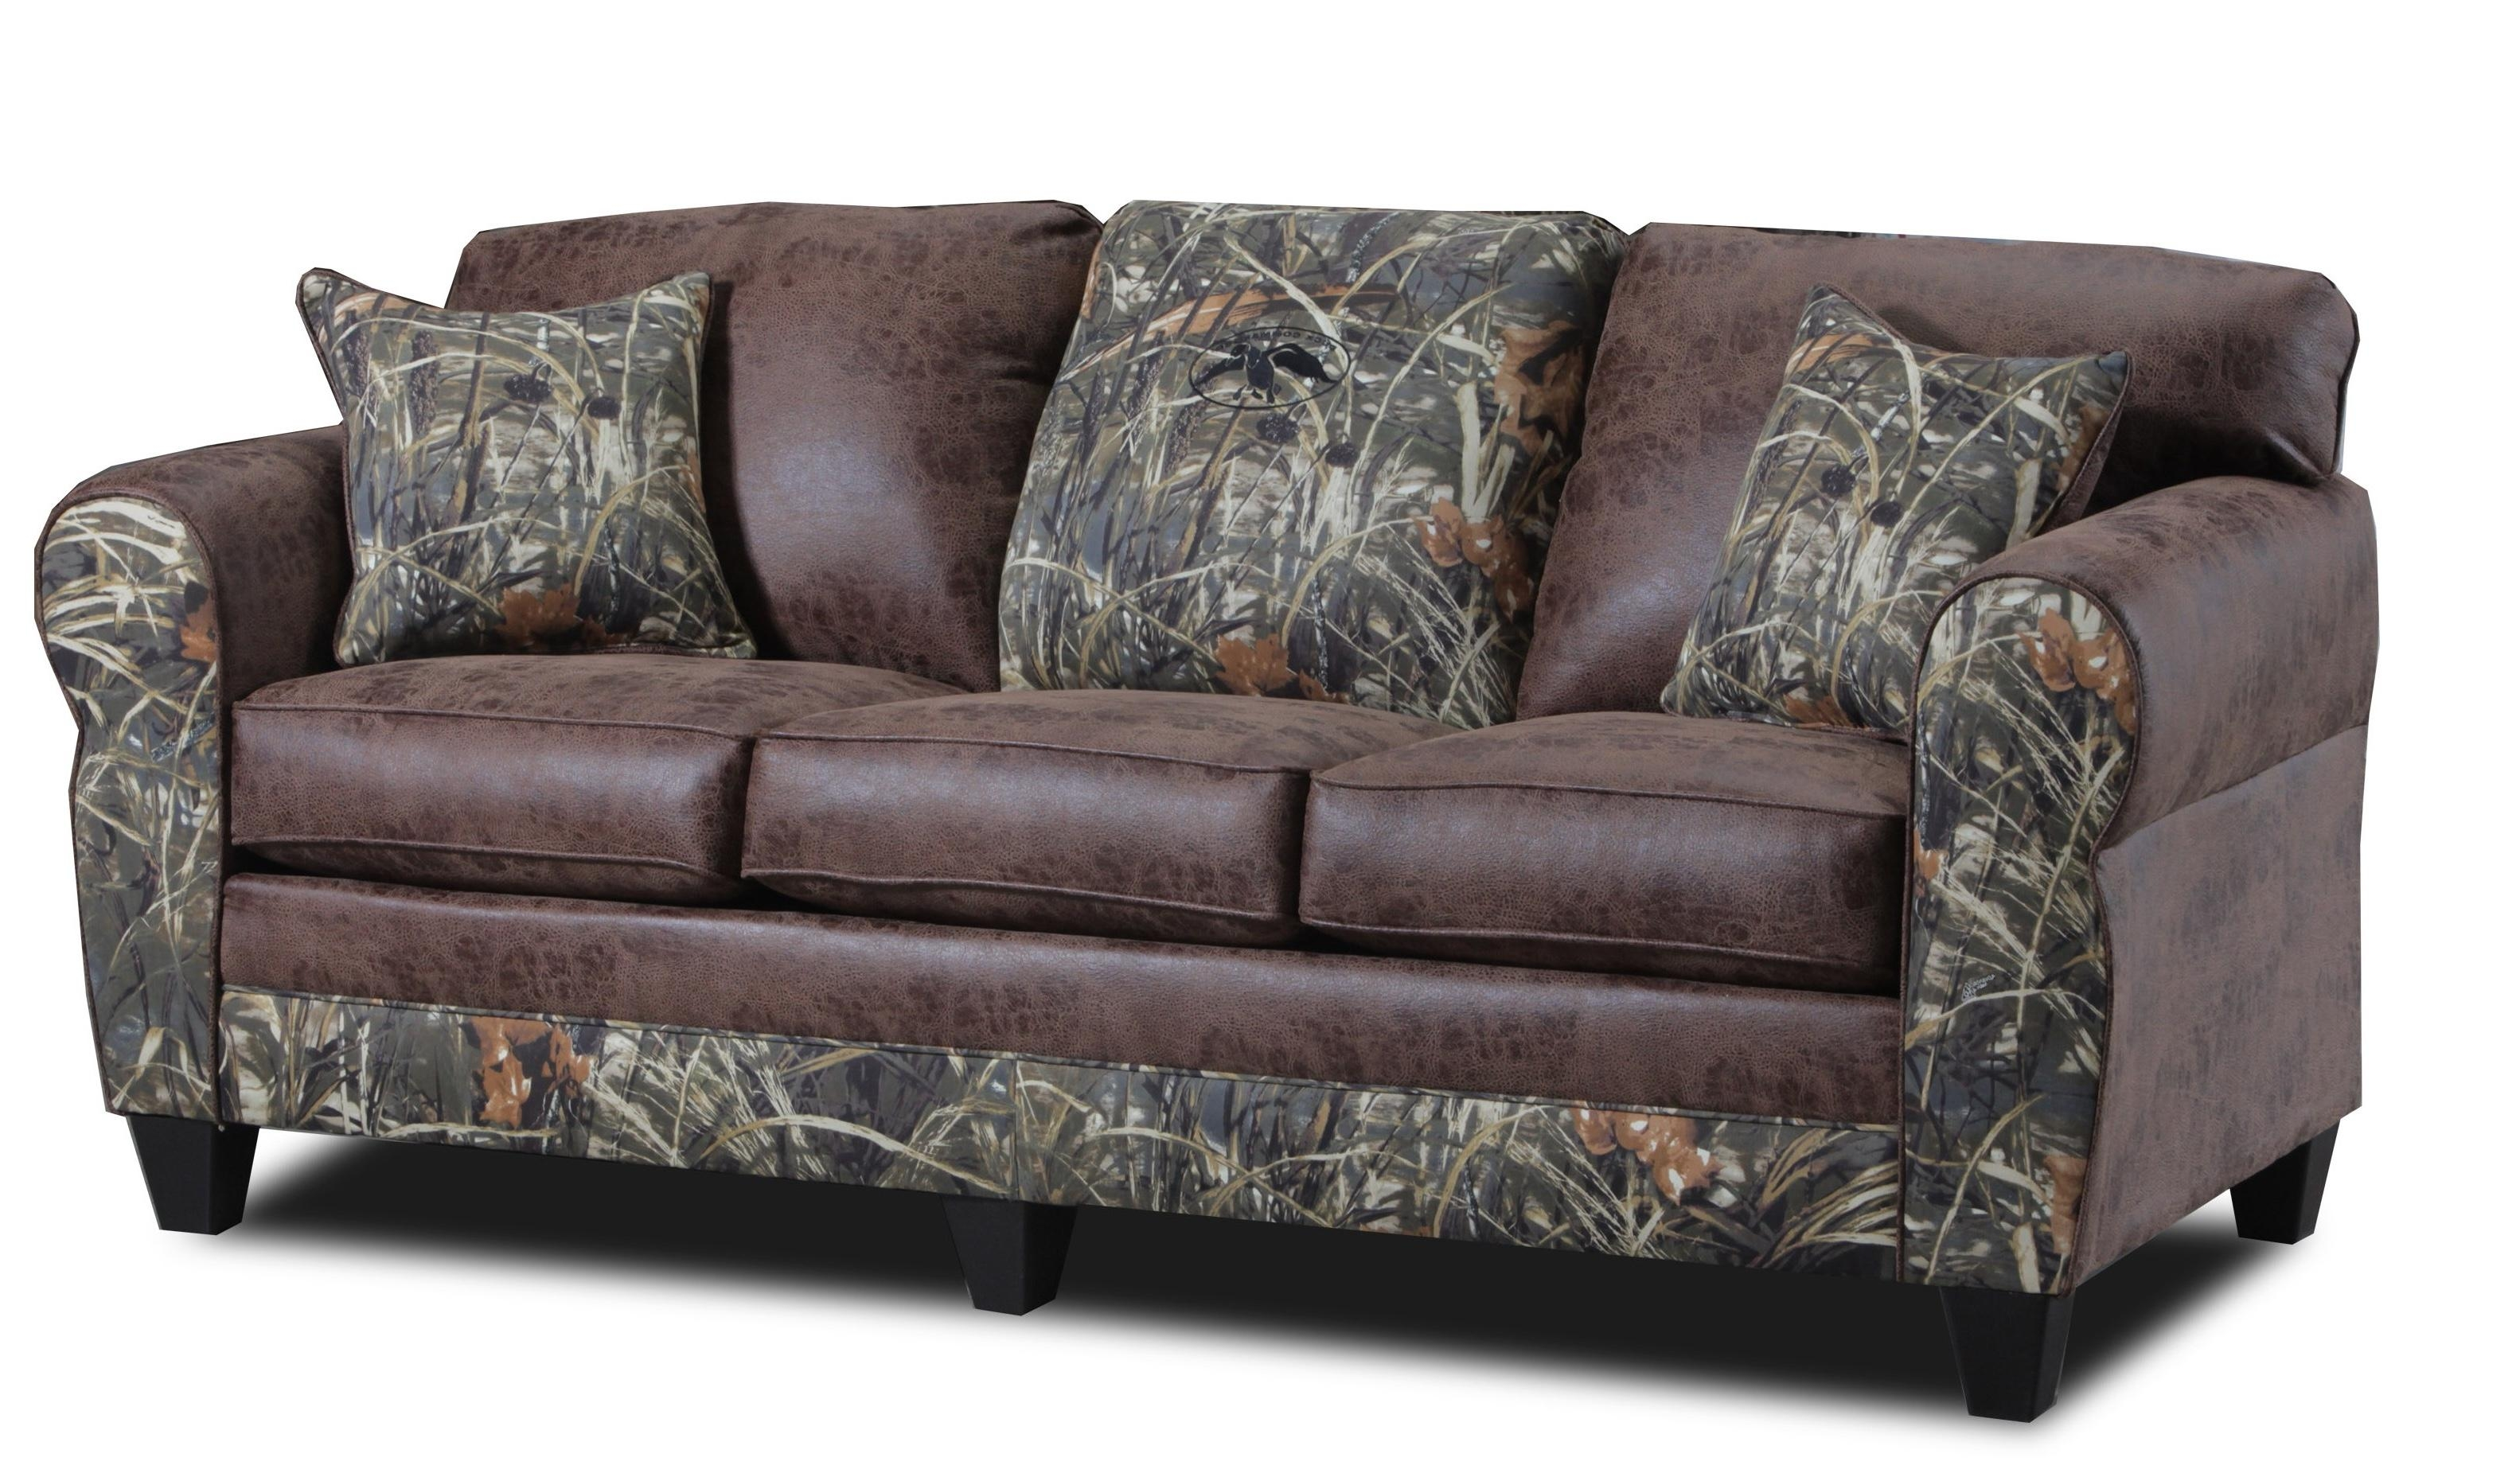 Camo Living Room Ideas Set From Aarons Nadine Sofa Sachi Camo New With Regard To Camo Reclining Sofas (View 12 of 20)